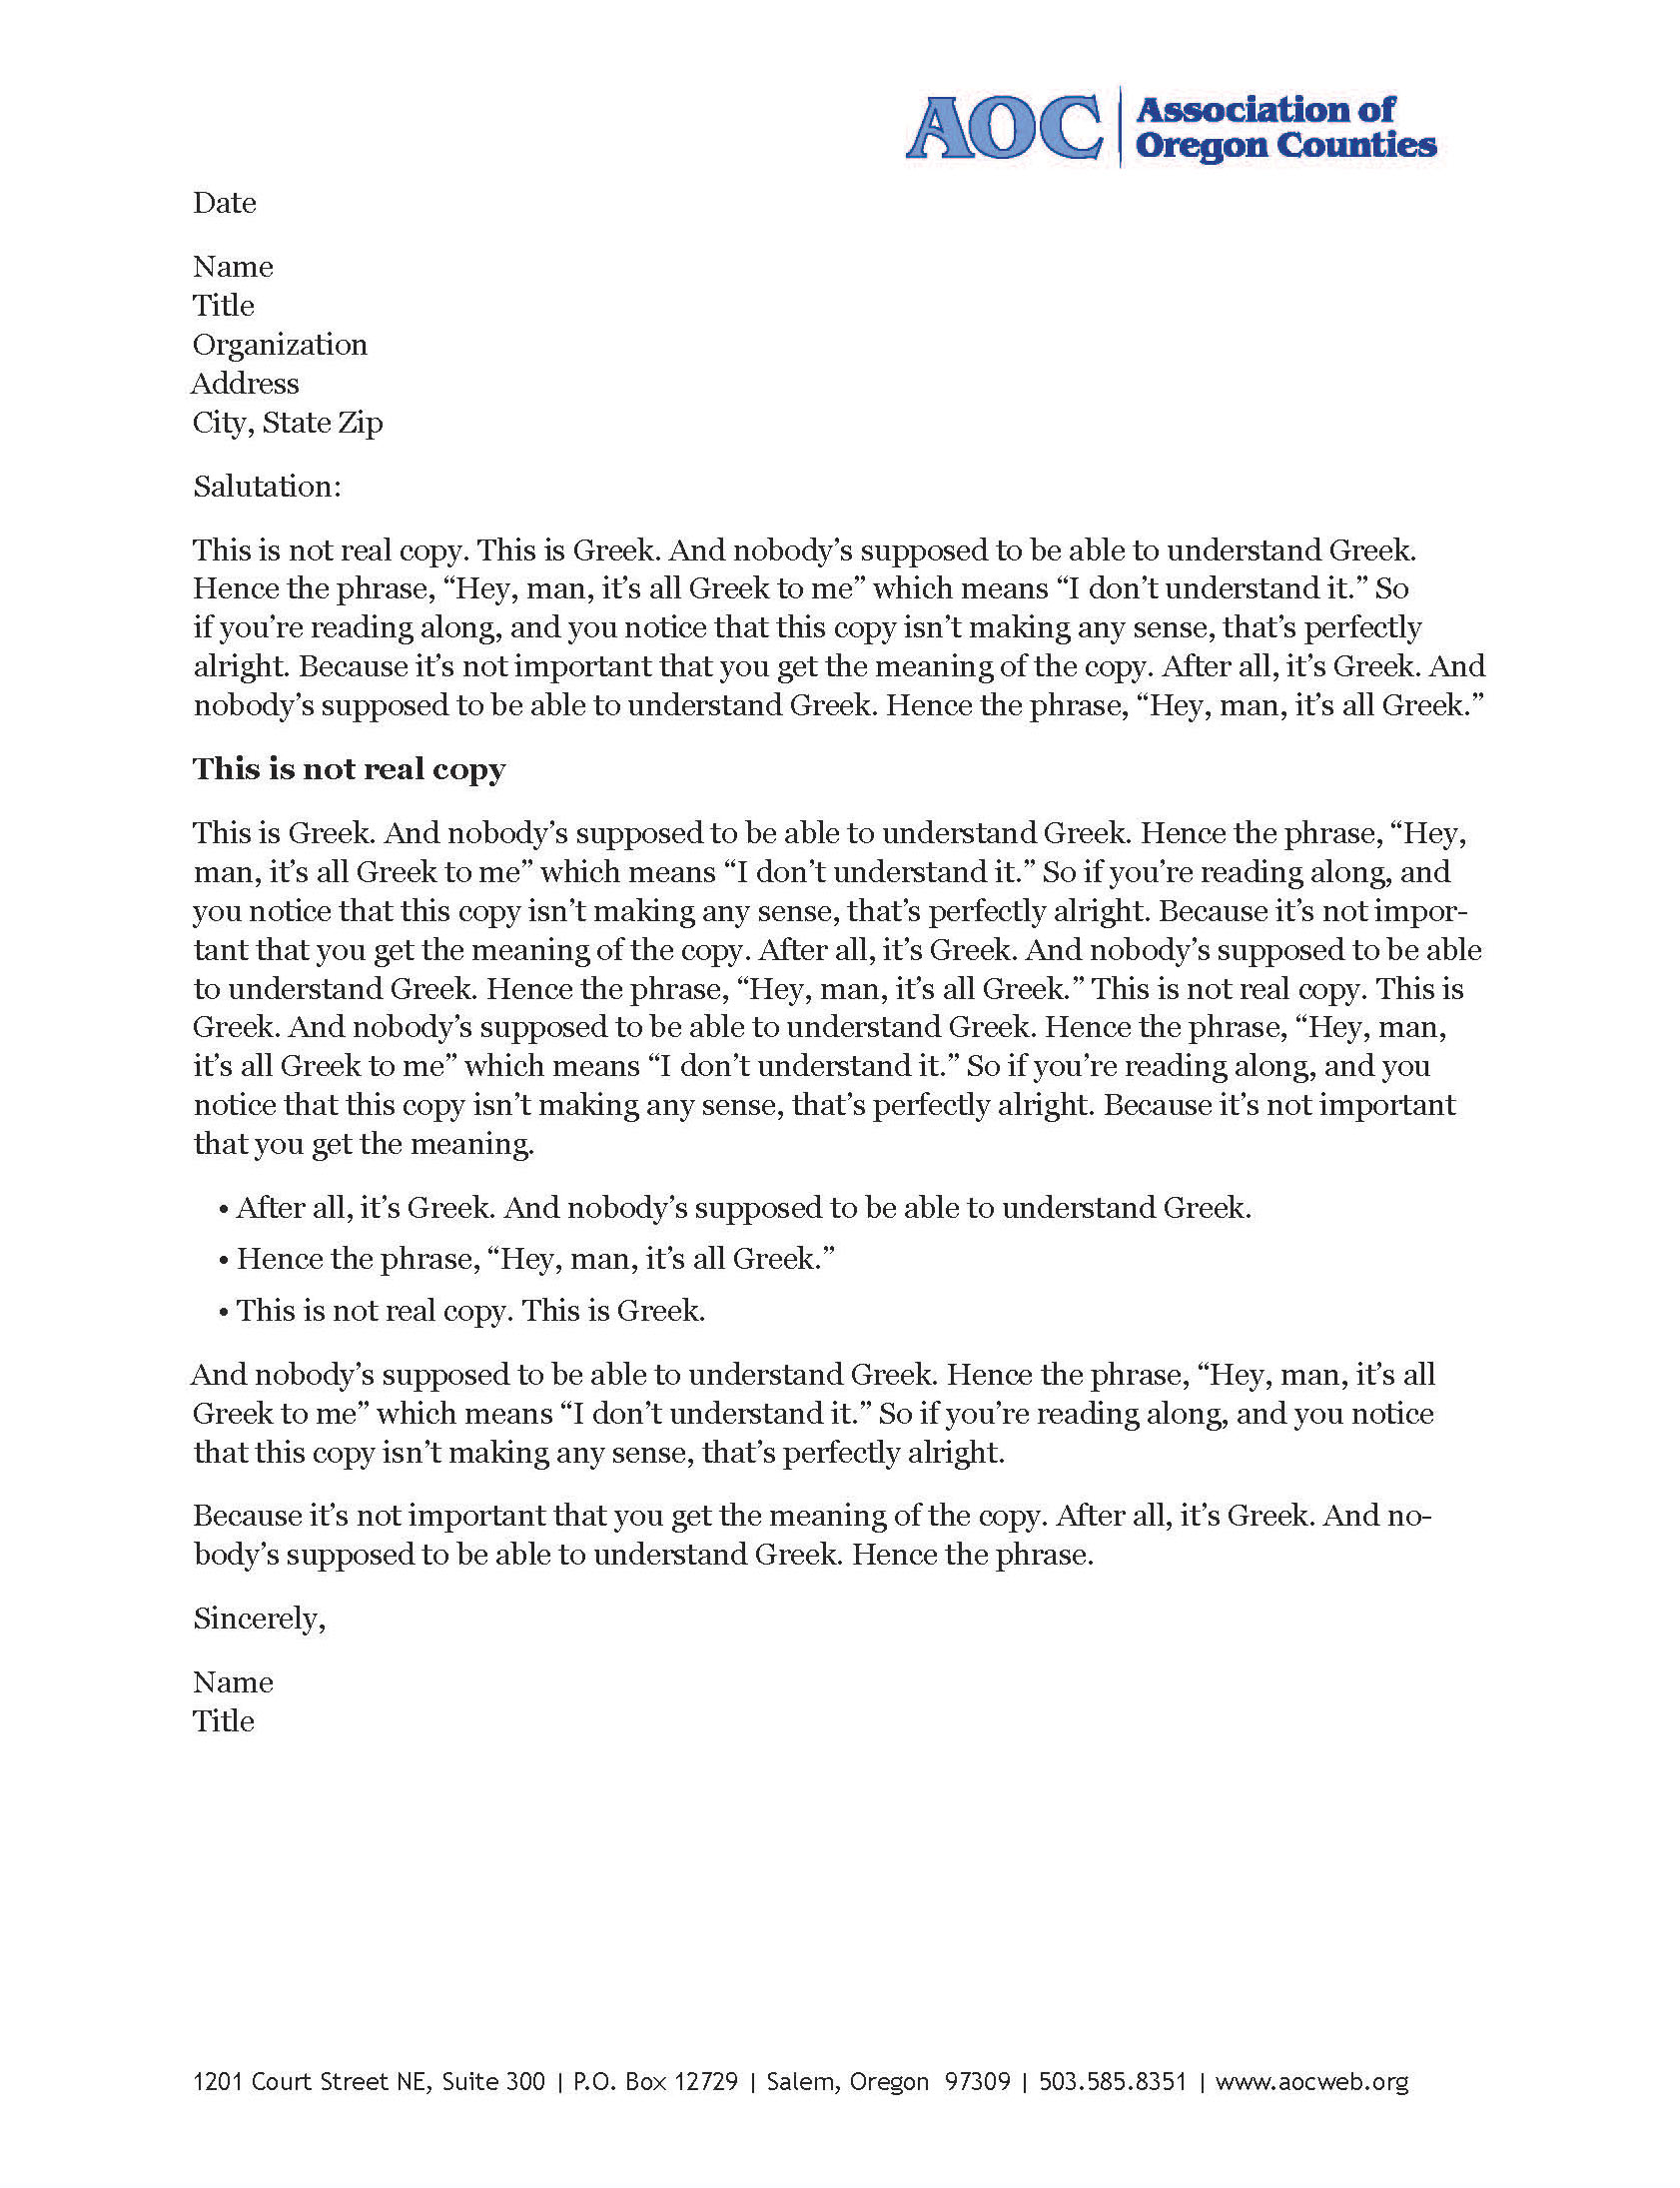 Letterhead templates how to: in Word - Optimize My Brand ...